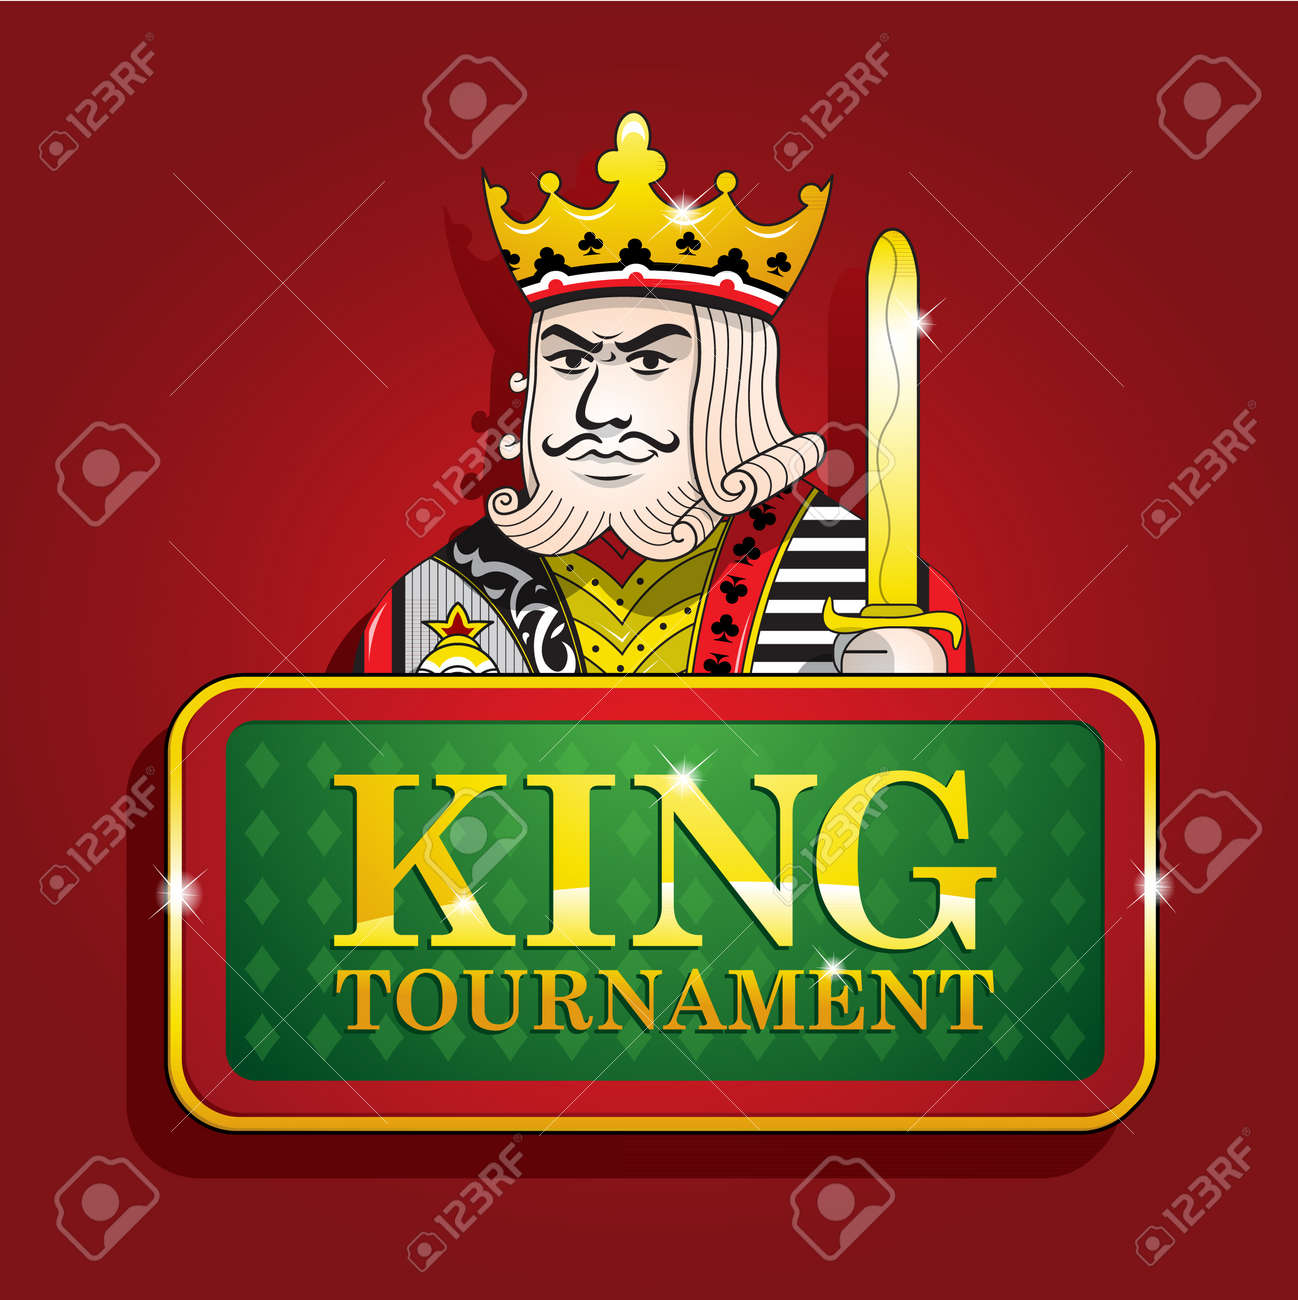 King of clubs casino poker banner tournament background - 48415796